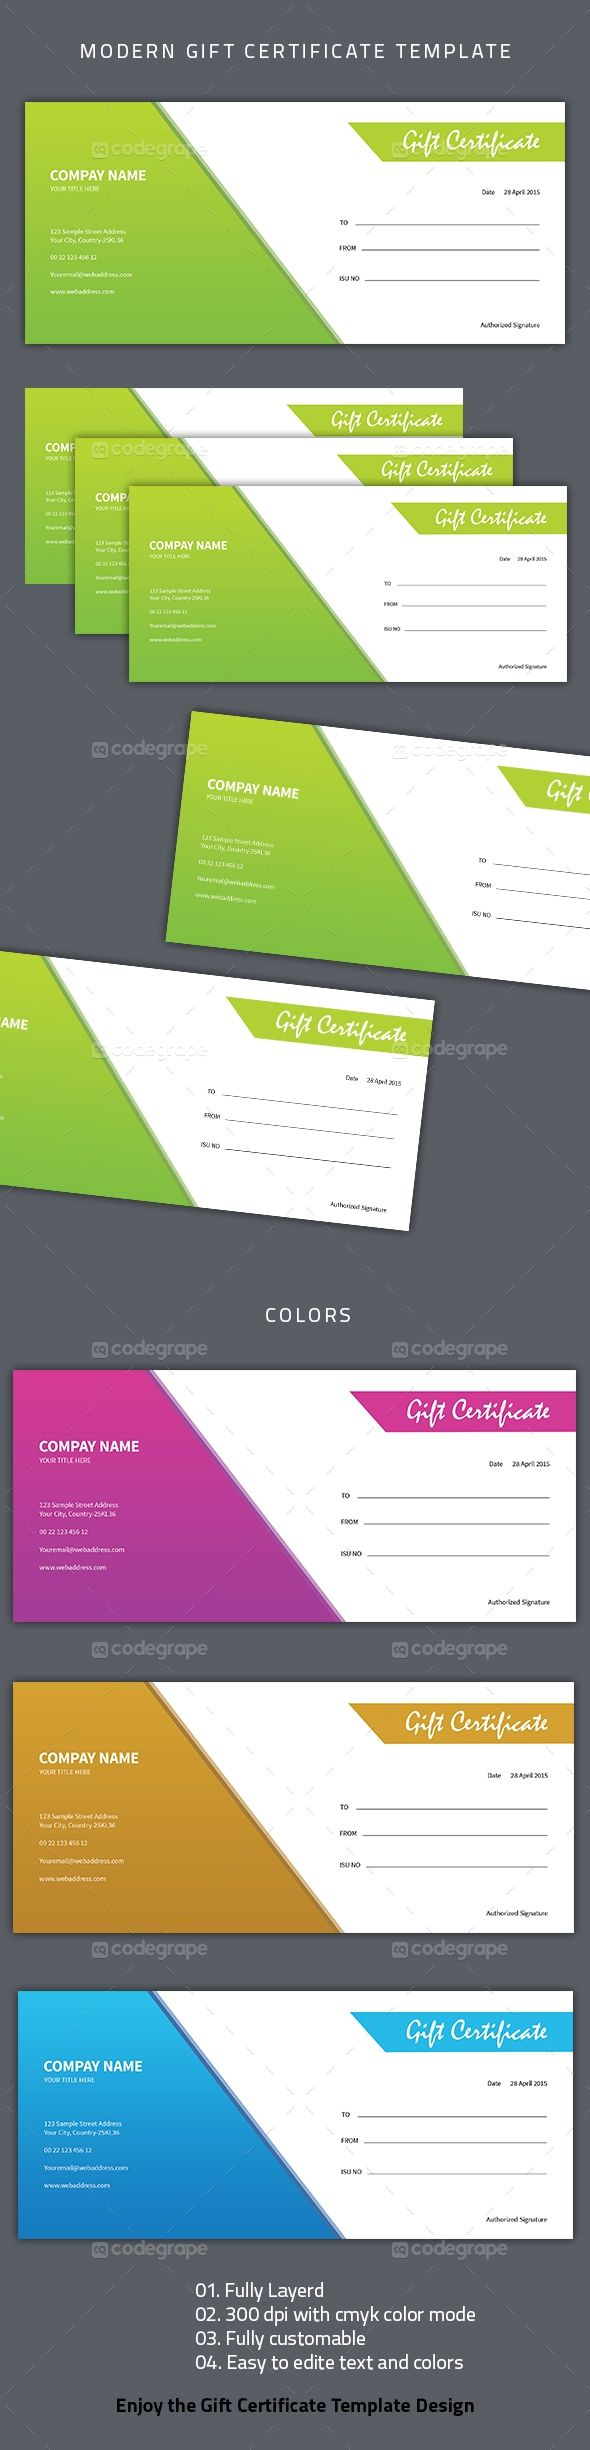 homemade gift certificate templates gift tag templates 1000 ideas about gift certificate templates homemade